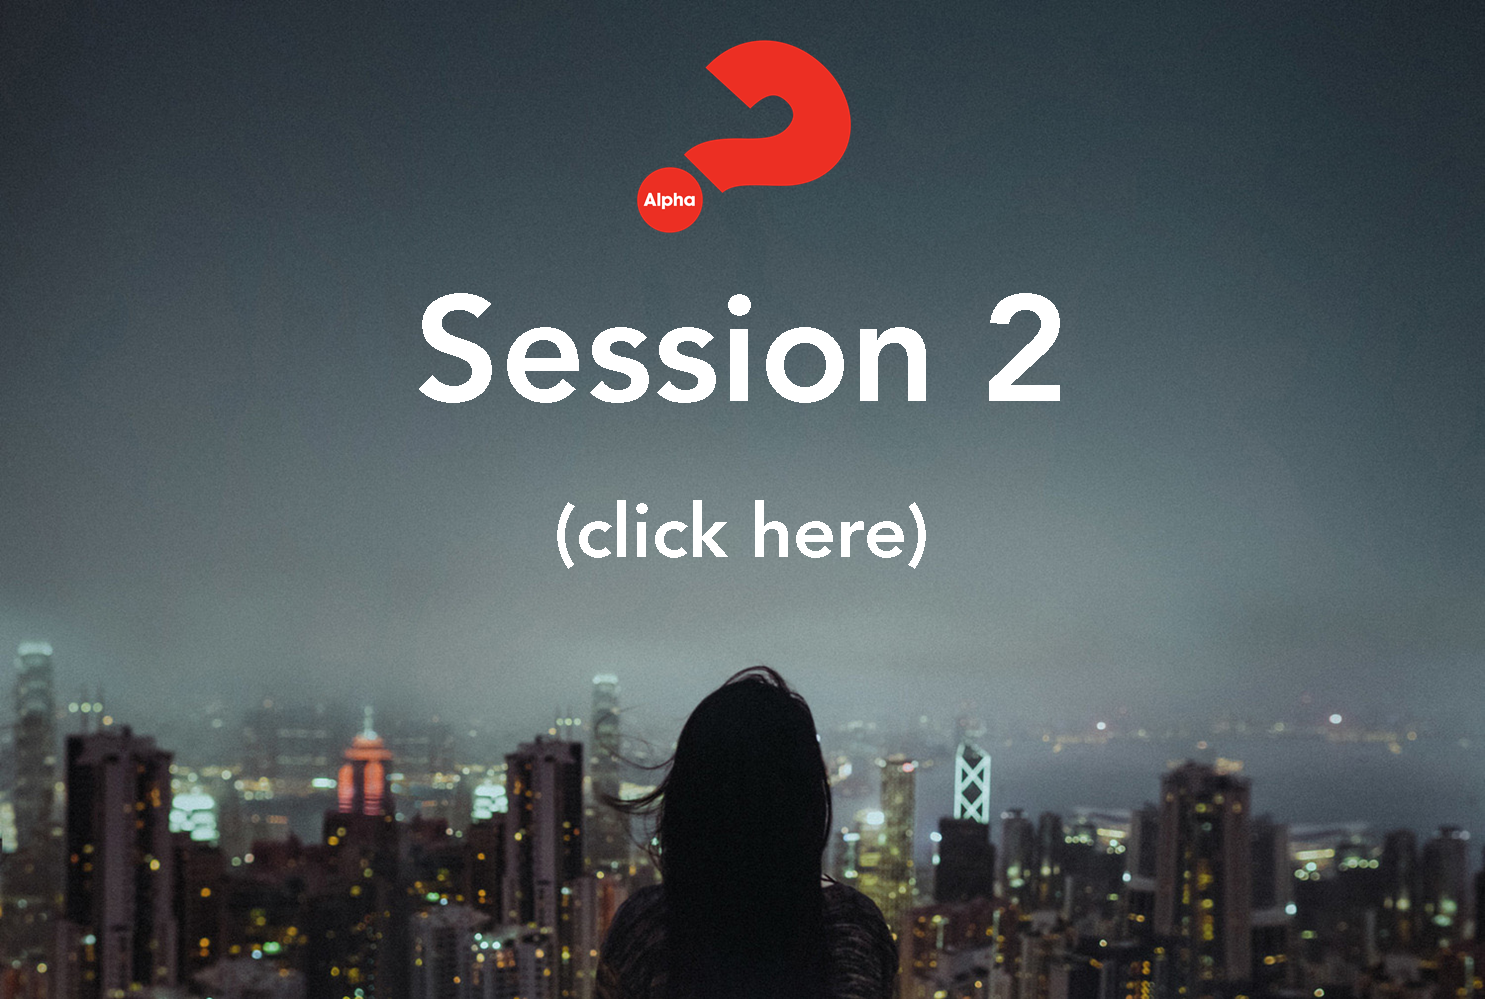 Session 2 WB.png